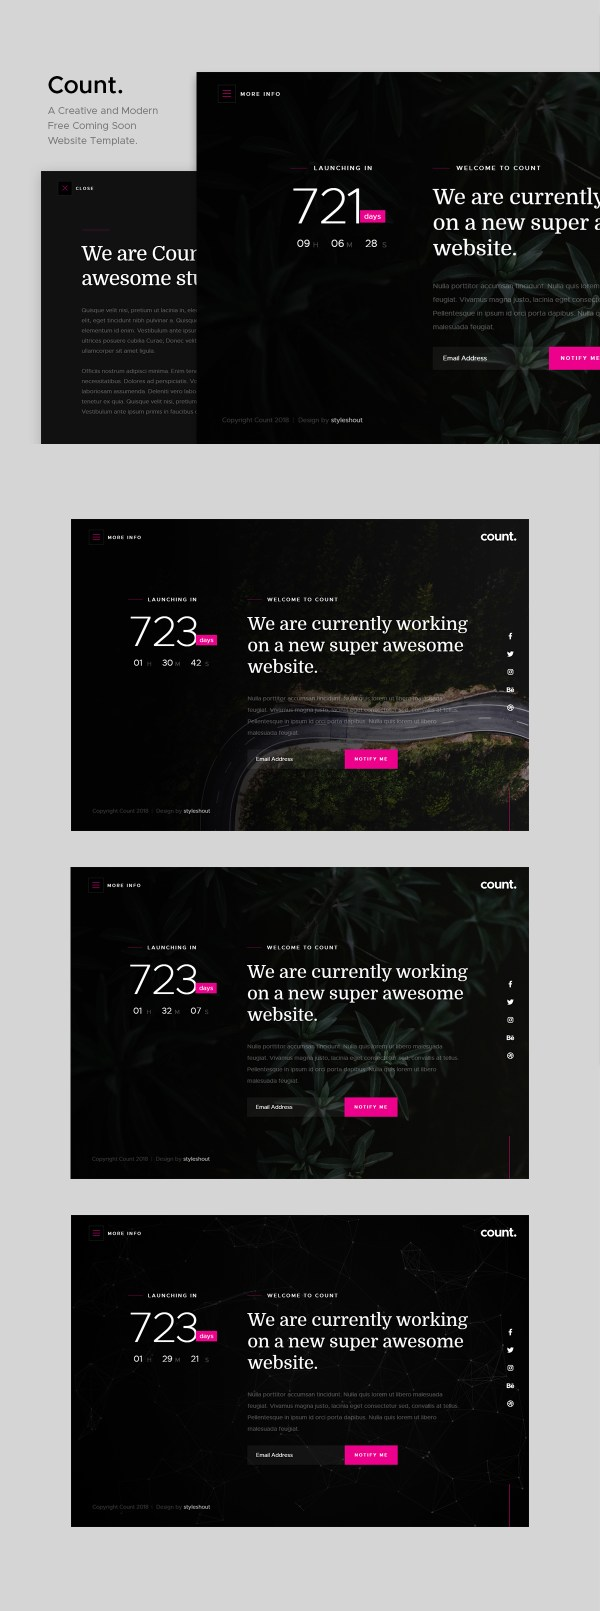 Count: Creative and Modern Coming Soon Website Template